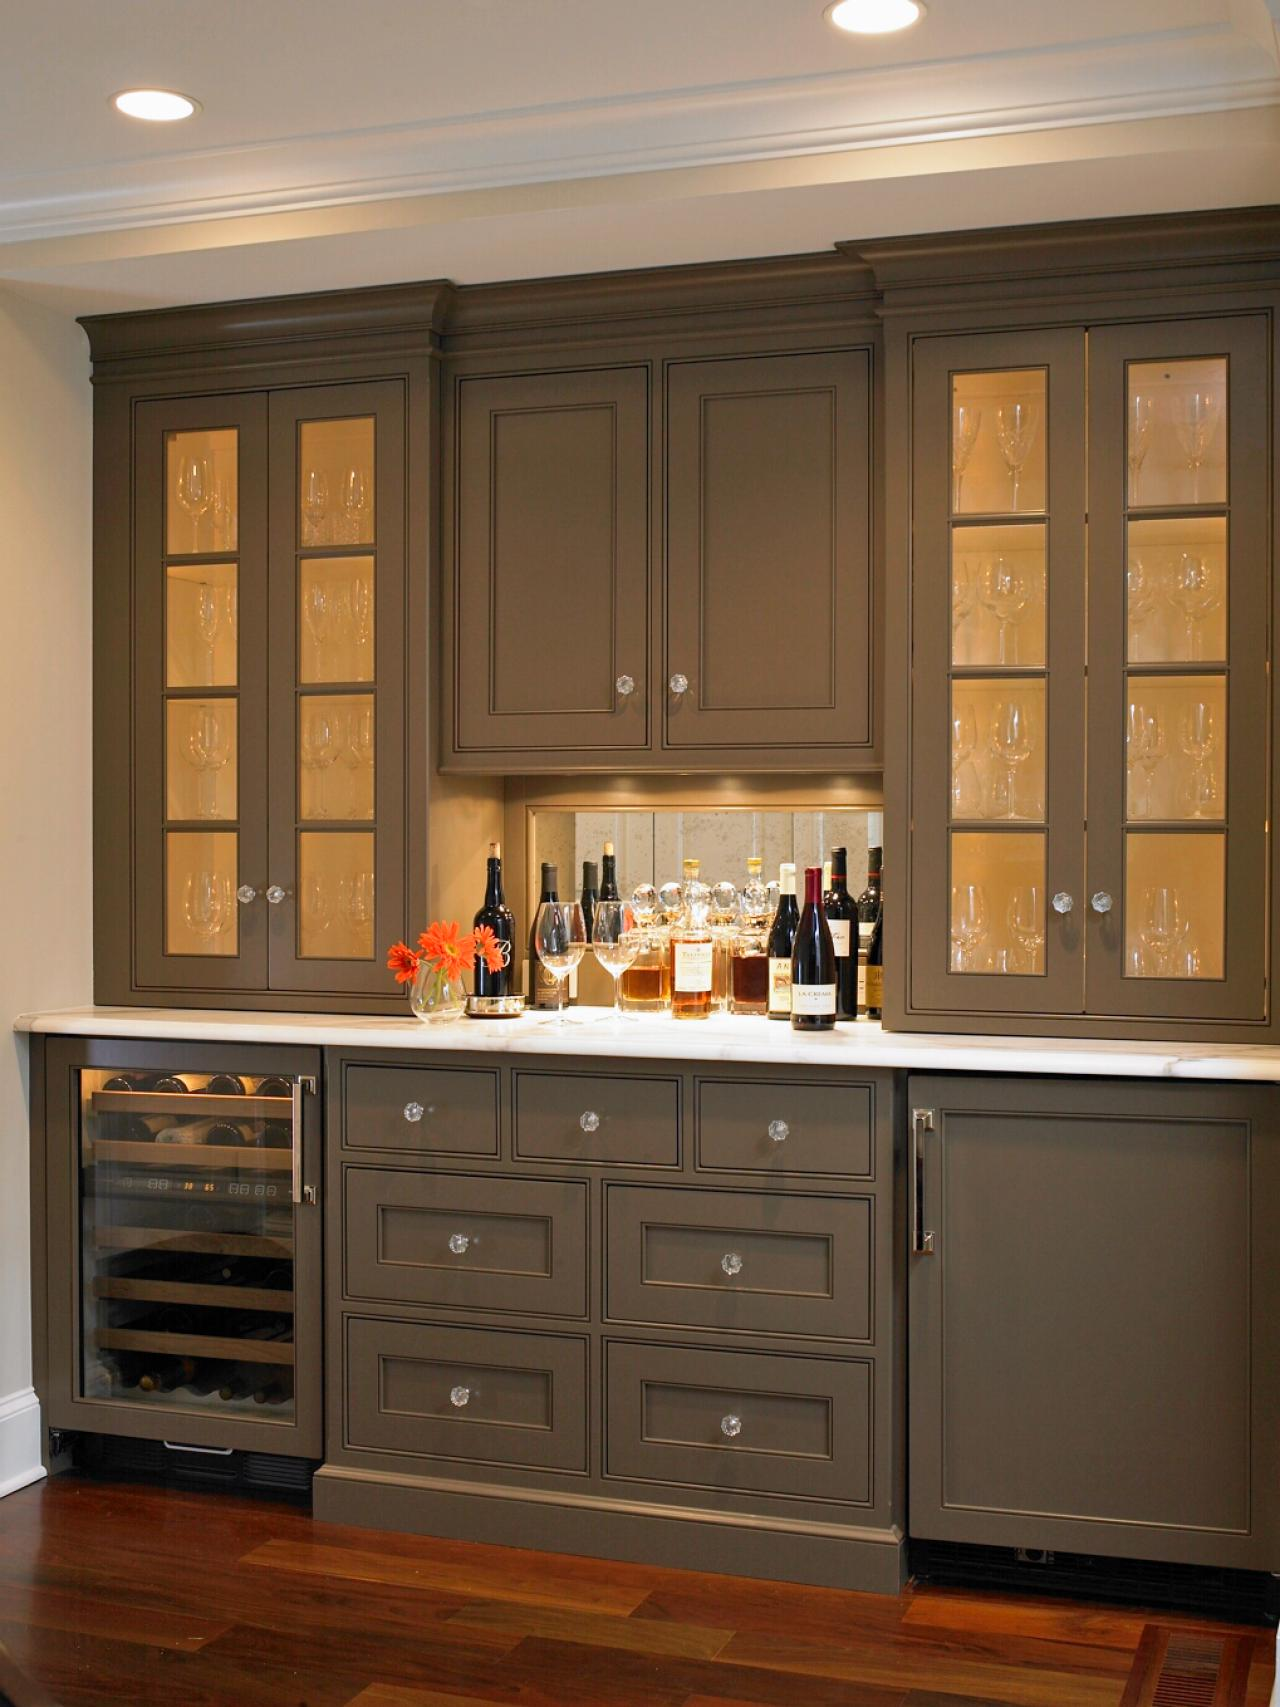 Shaker kitchen cabinets pictures ideas tips from hgtv for Kitchen cabinets designs photos